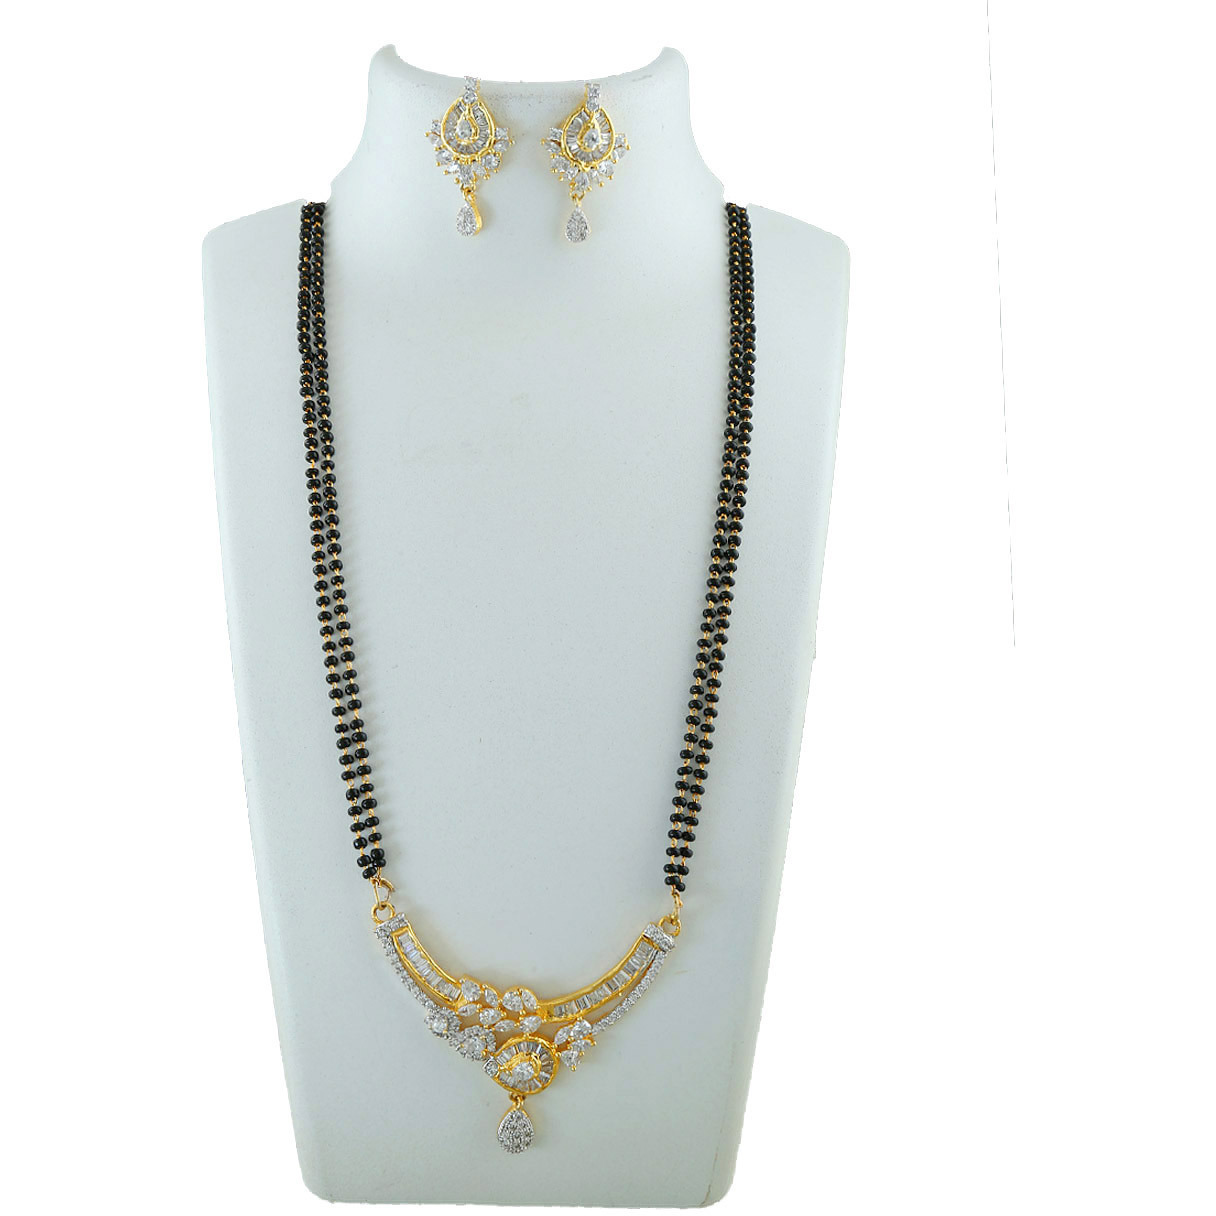 Anuradha Art Golden Tone Styled With Black Beads Chain Studded With American Diamonds Mangalsutra For Women